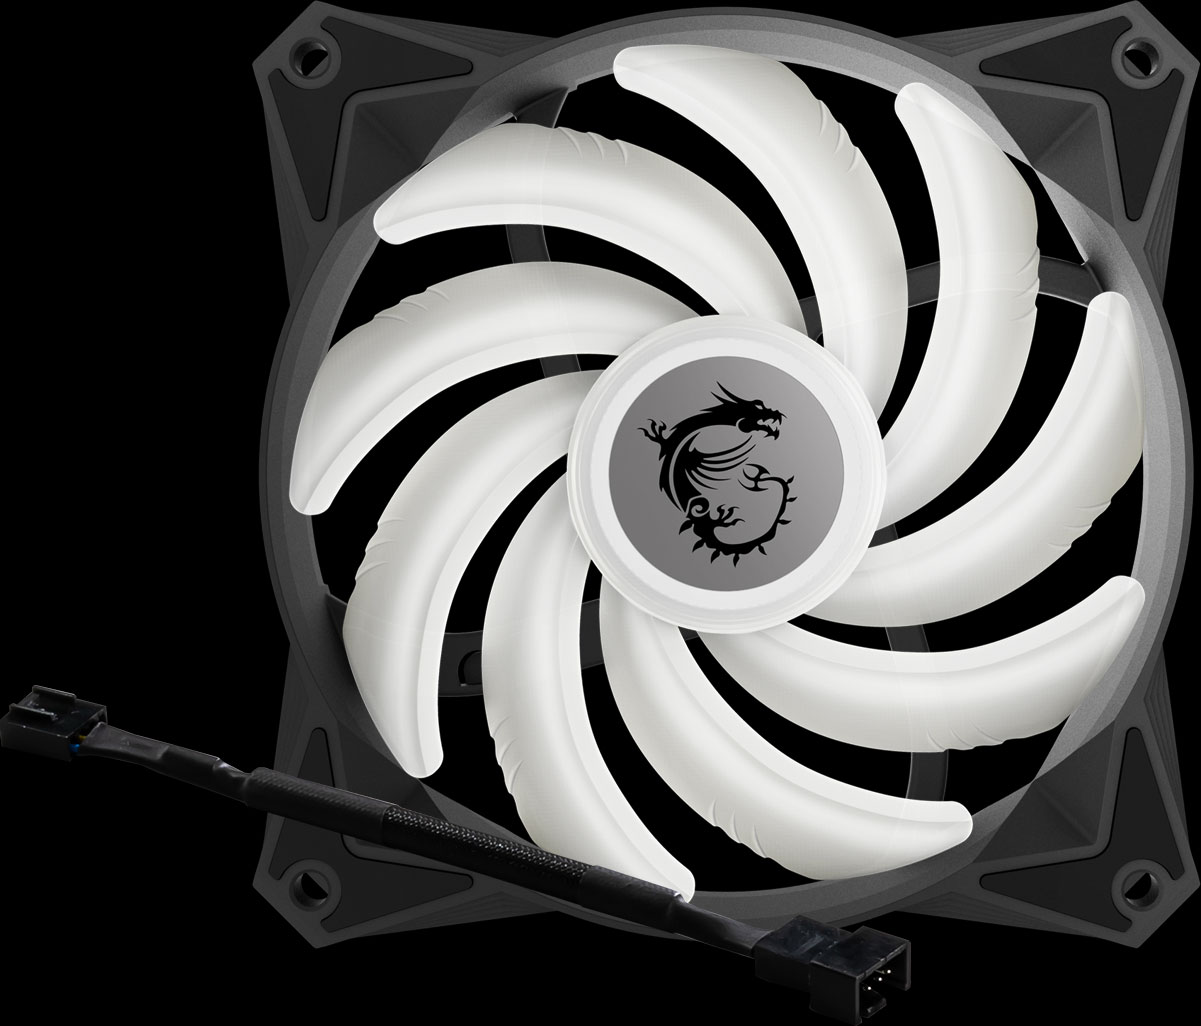 msi liquid core fan